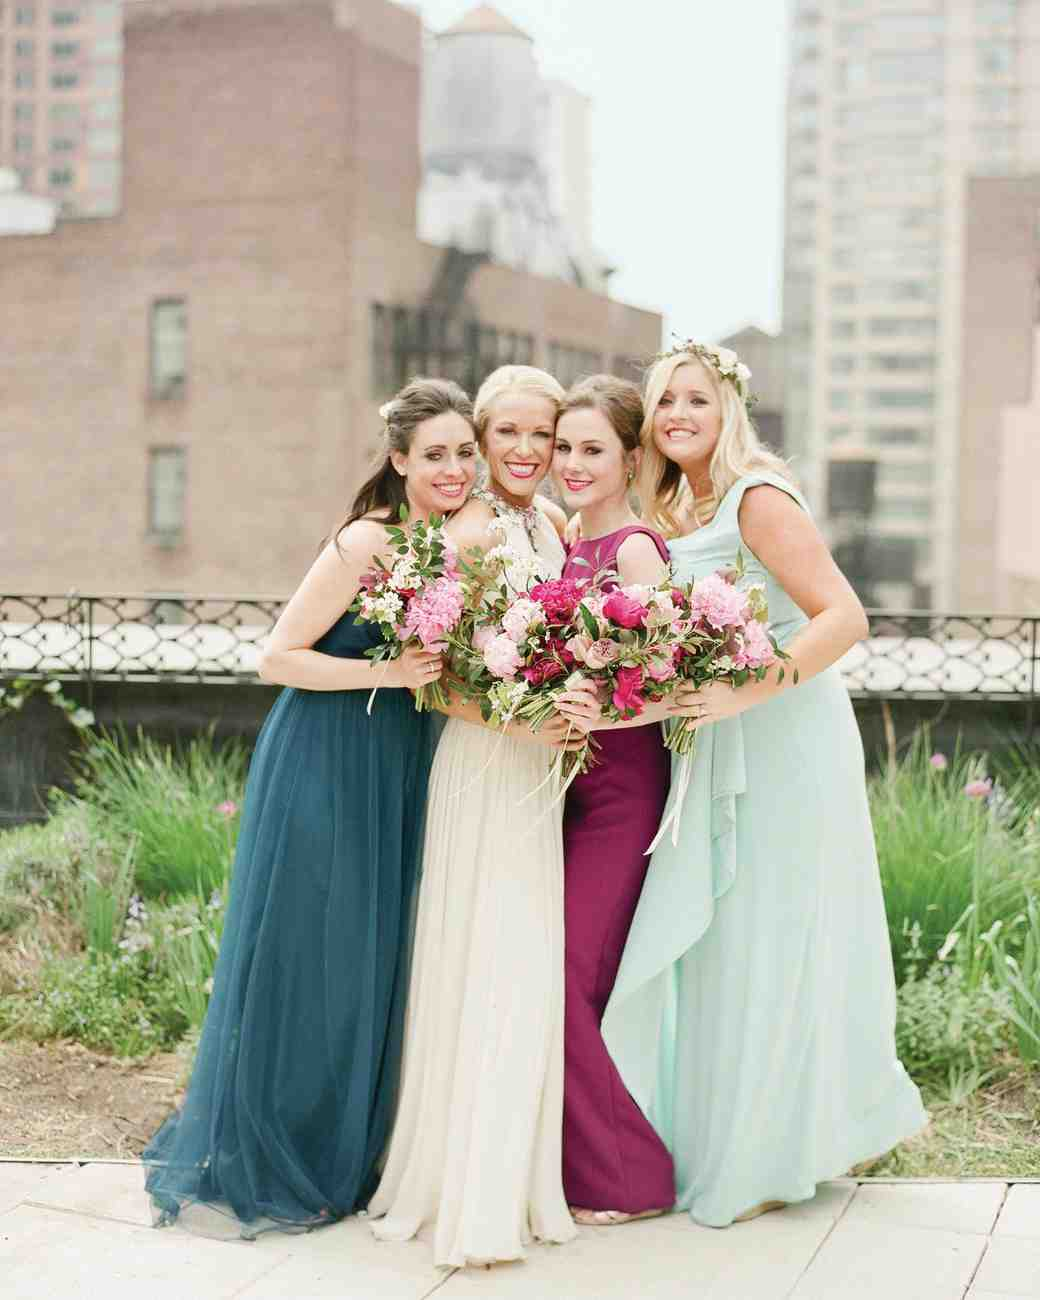 randy-mayo-real-wedding-bridesmaids-dresses-and-bouquets.jpg